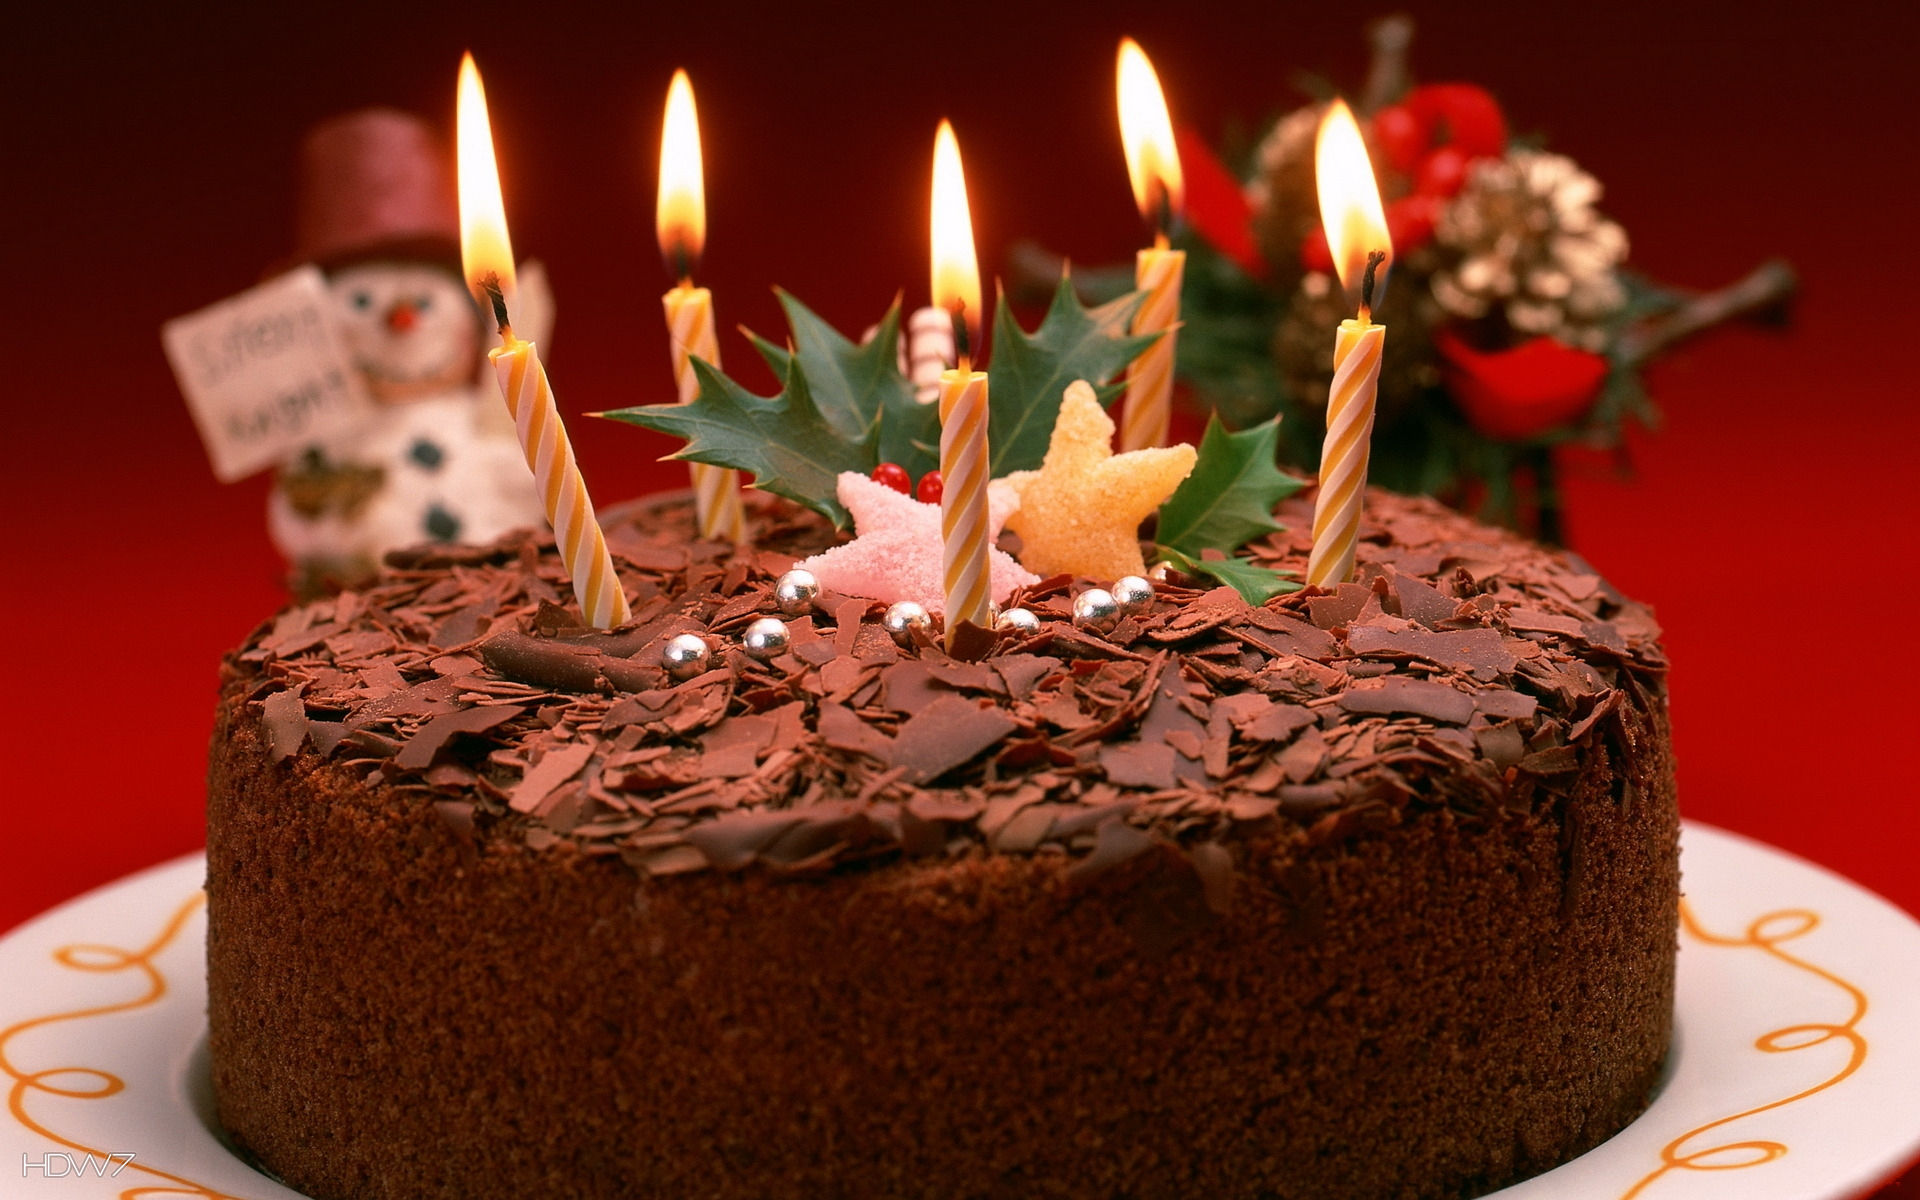 Birthday Cake With Candles Wallpaper Hd Wallpaper Gallery 54